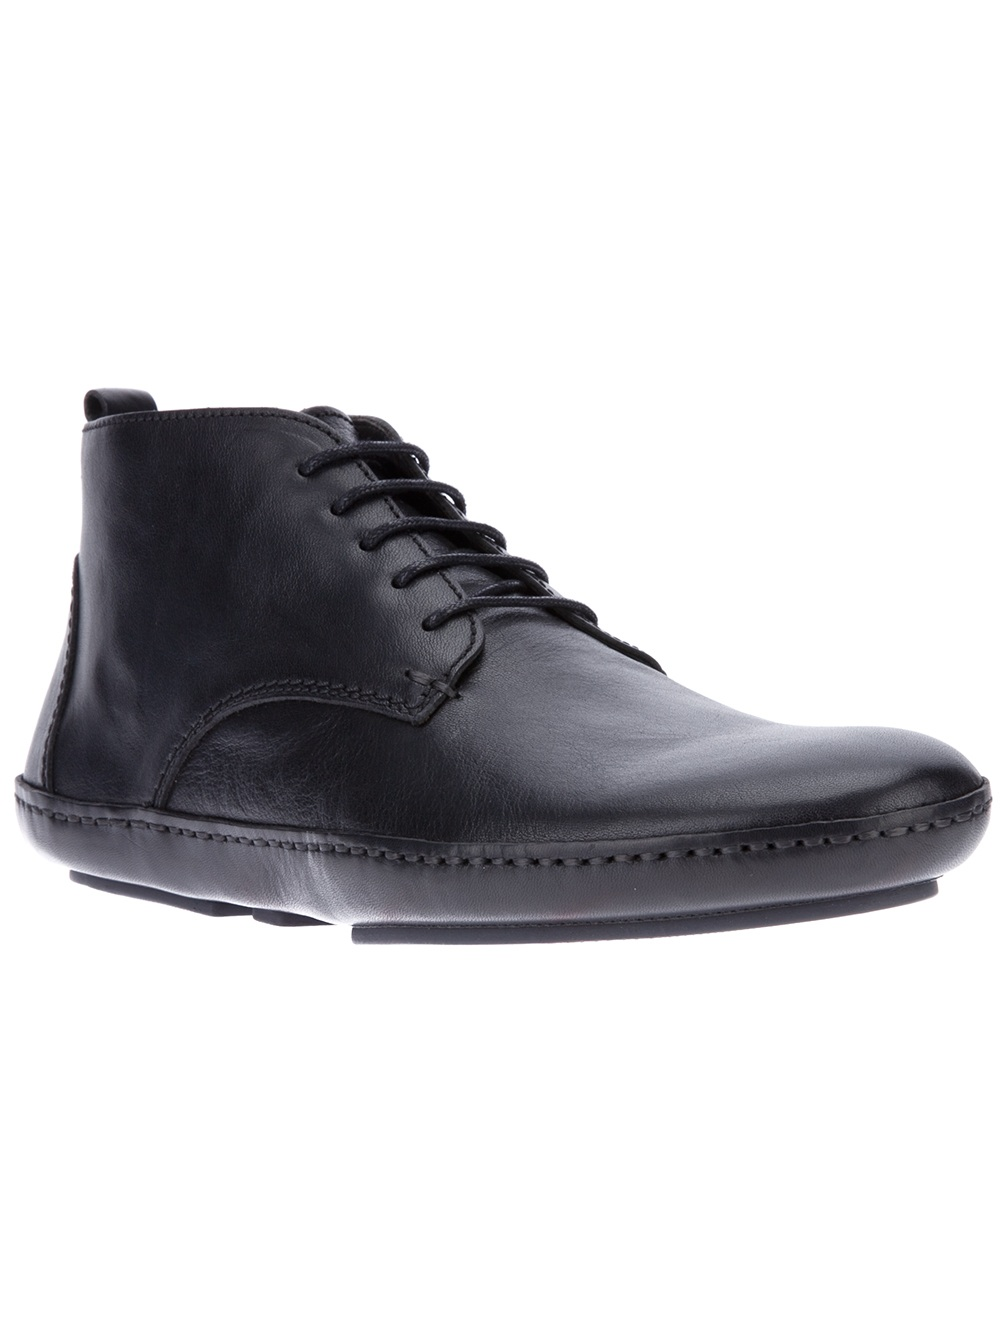 Lanvin Lace Up Ankle Boot in Black for Men